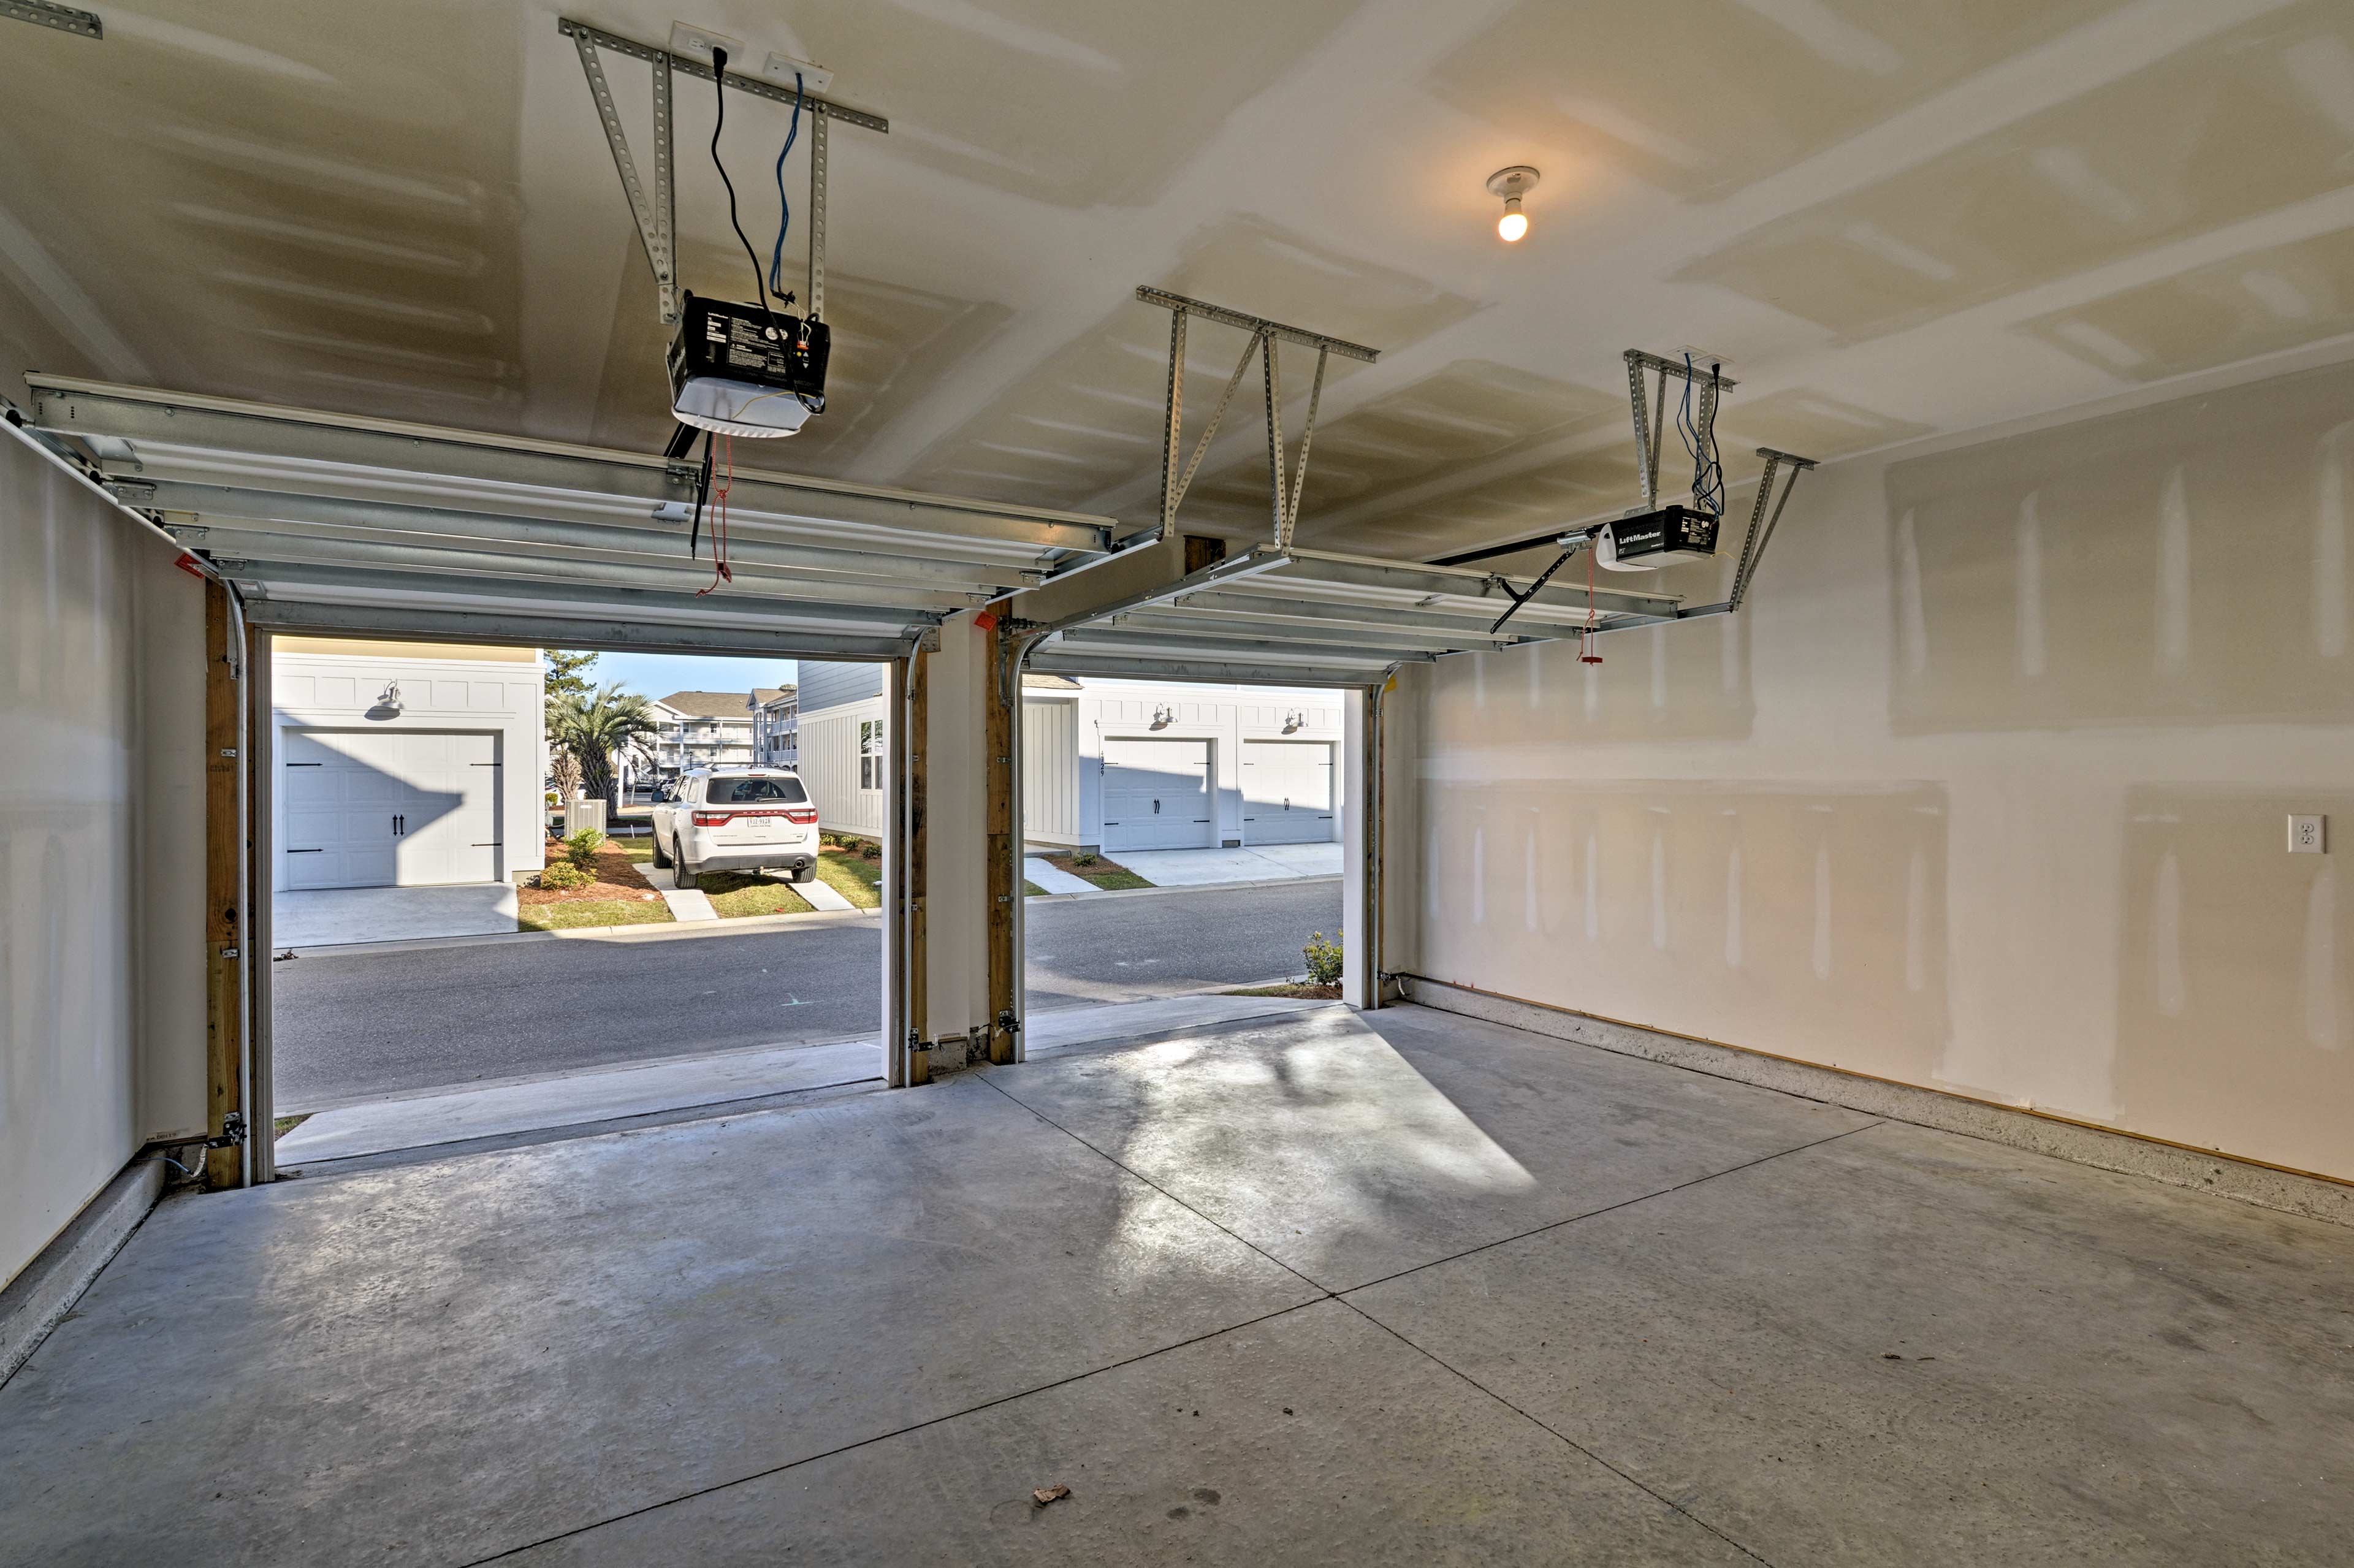 2 garage parking spots are available with this home.